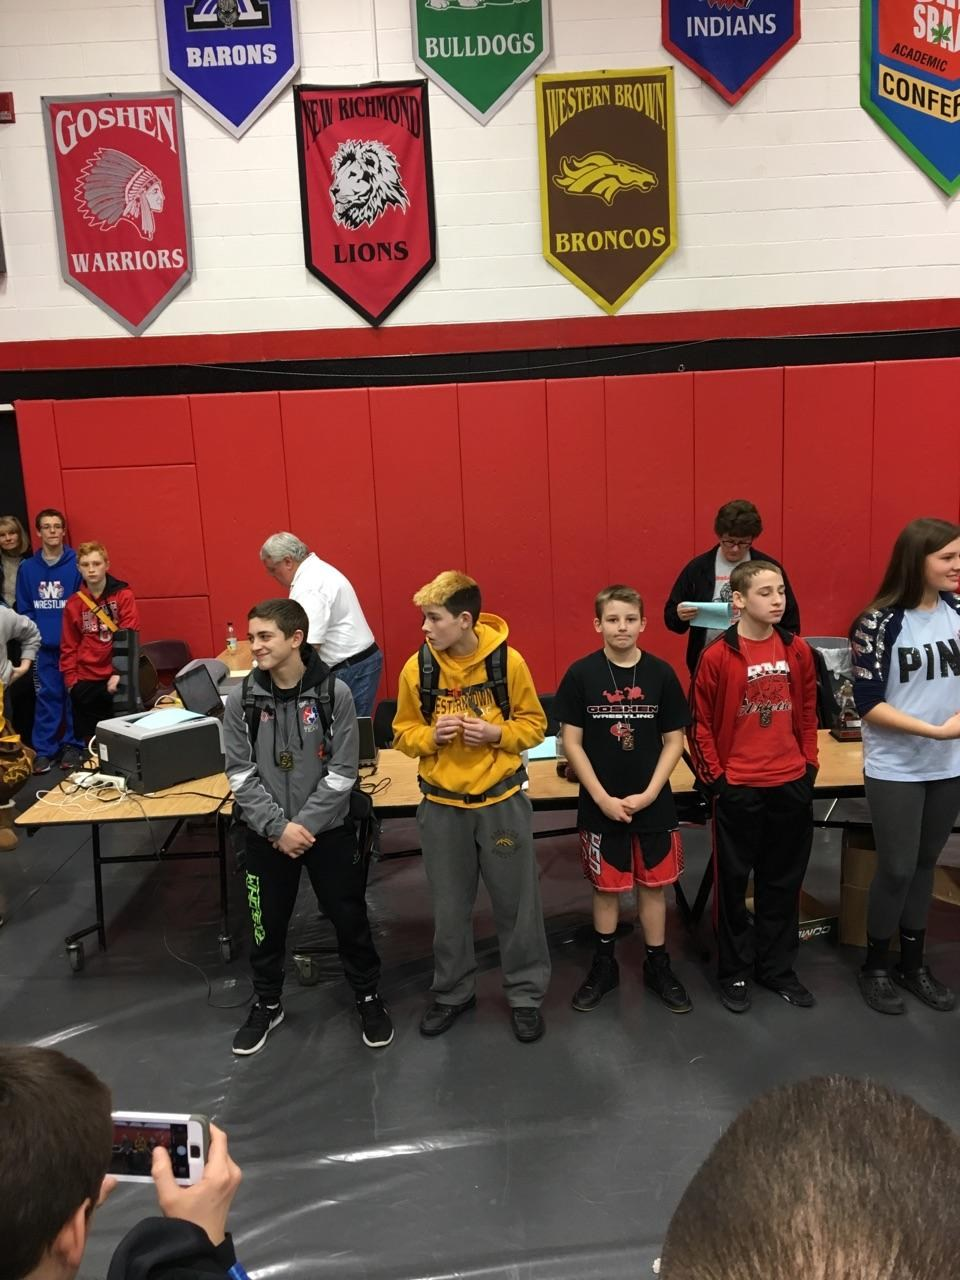 7th grade wrestler Ace Atwood